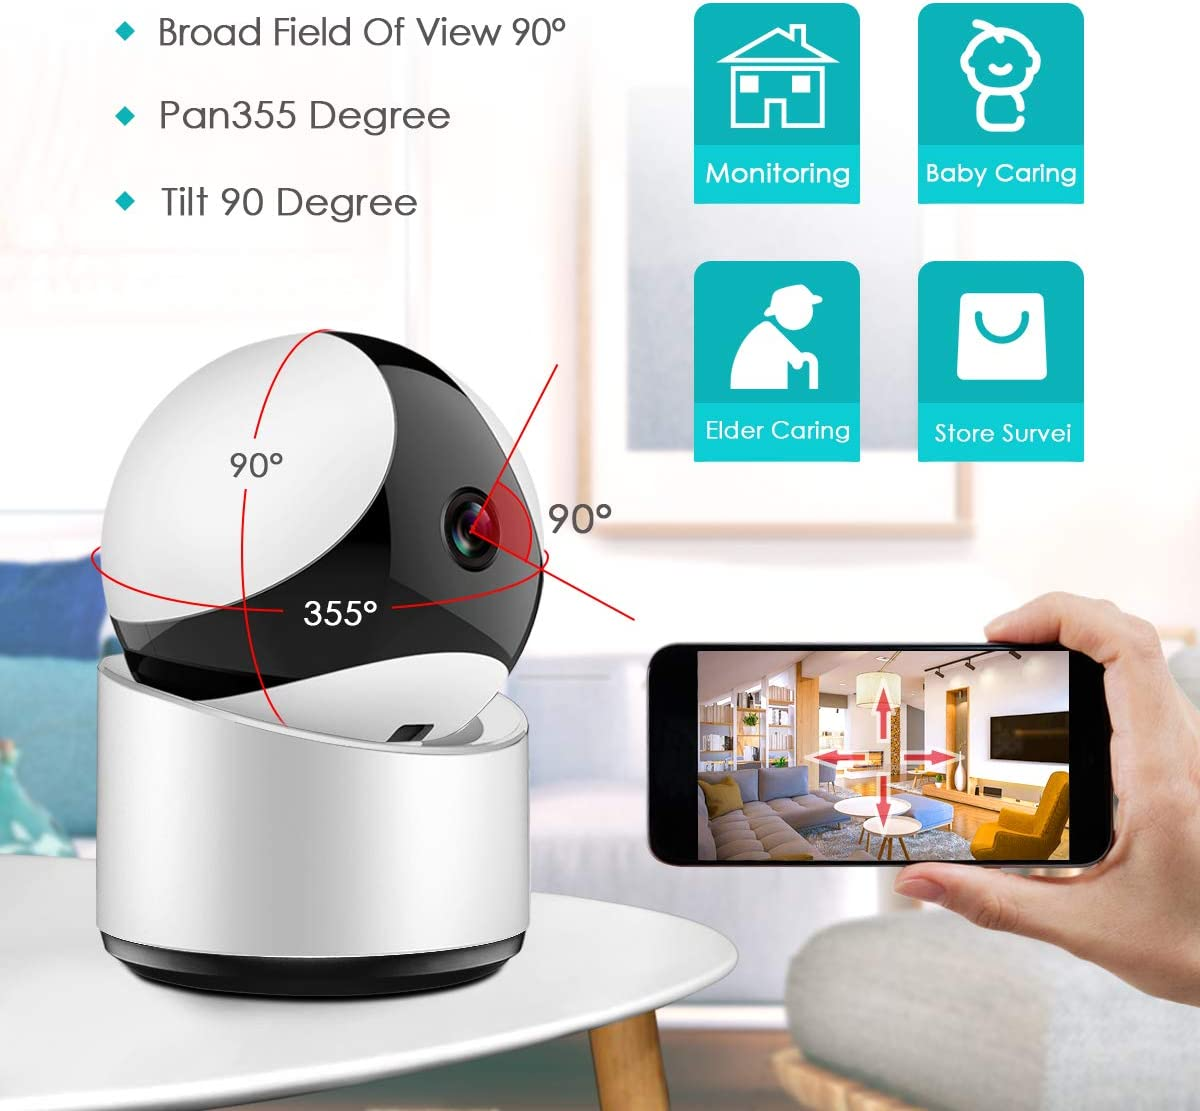 Wireless Security Camera, HD Home Security Surveillance WiFi Camera with Motion Detection, Pan Tilt, Night Vision and Two Way Audio, Baby Pet Monitor and Nanny Cam